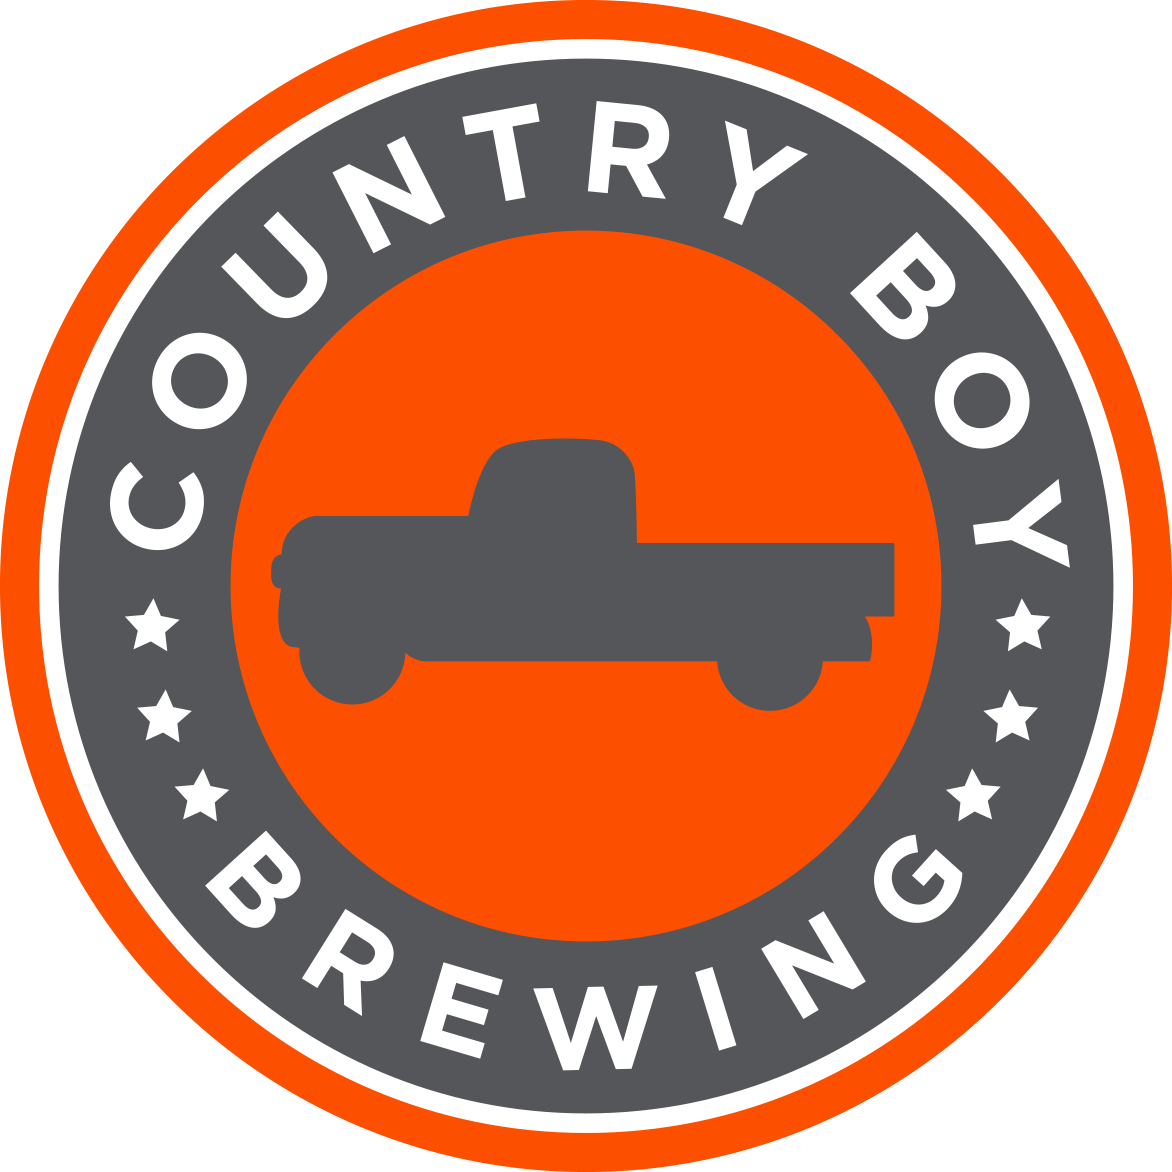 Country Boy Brewing's Online Shop